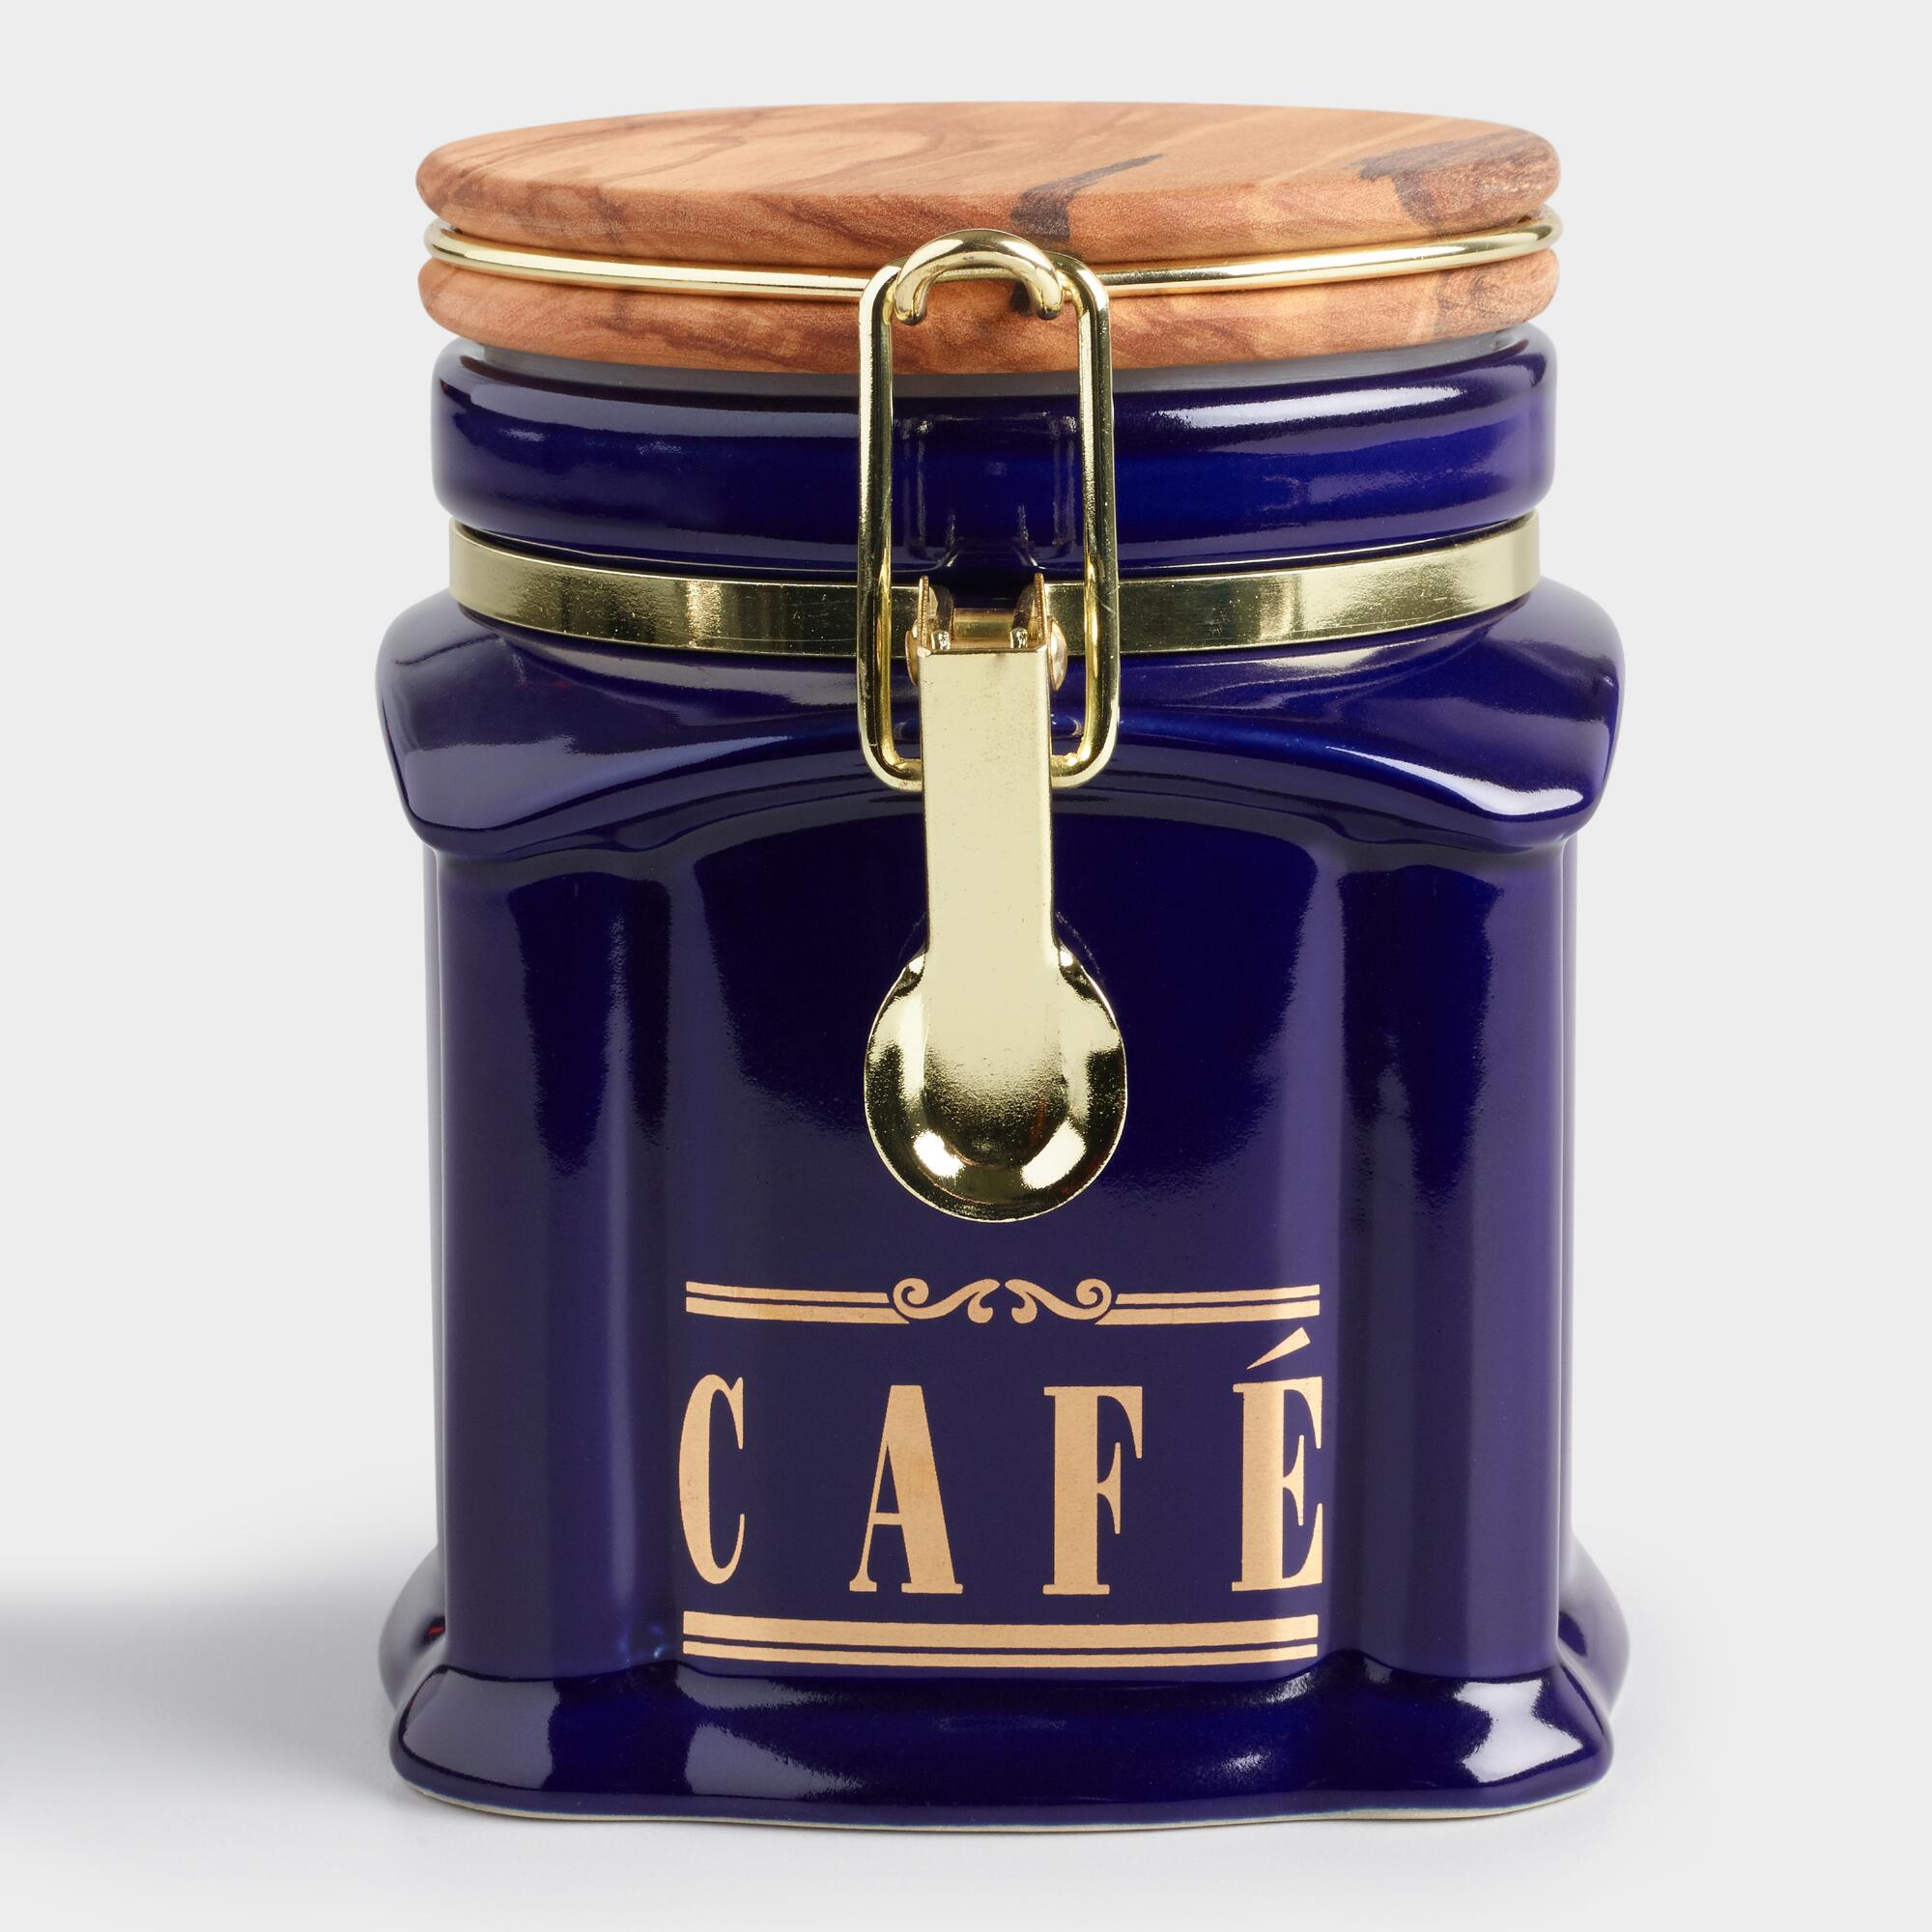 Blue Cafe Ceramic Storage Canister with Wood Gasket Lid by World Market